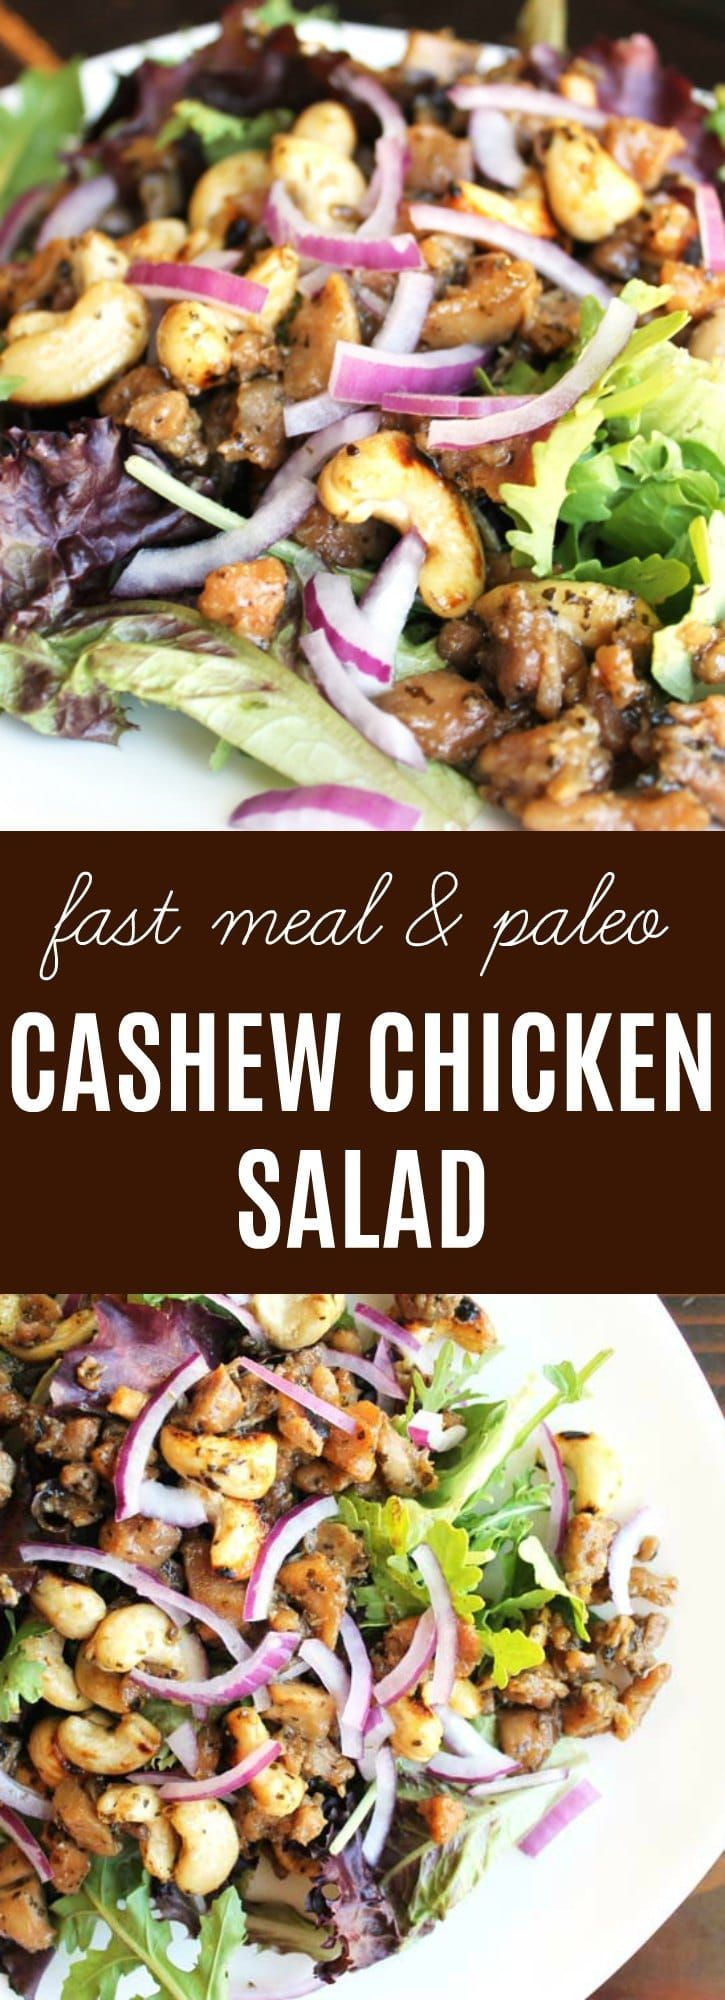 Cashew Chicken Salad: This is the most flavorful chicken I have ever made. It was an instant hit for the whole family, took less than 30 minutes to prepare, & tastes so great as leftovers that we don't even bother reheating it. Paleo. | thenourishedfamily